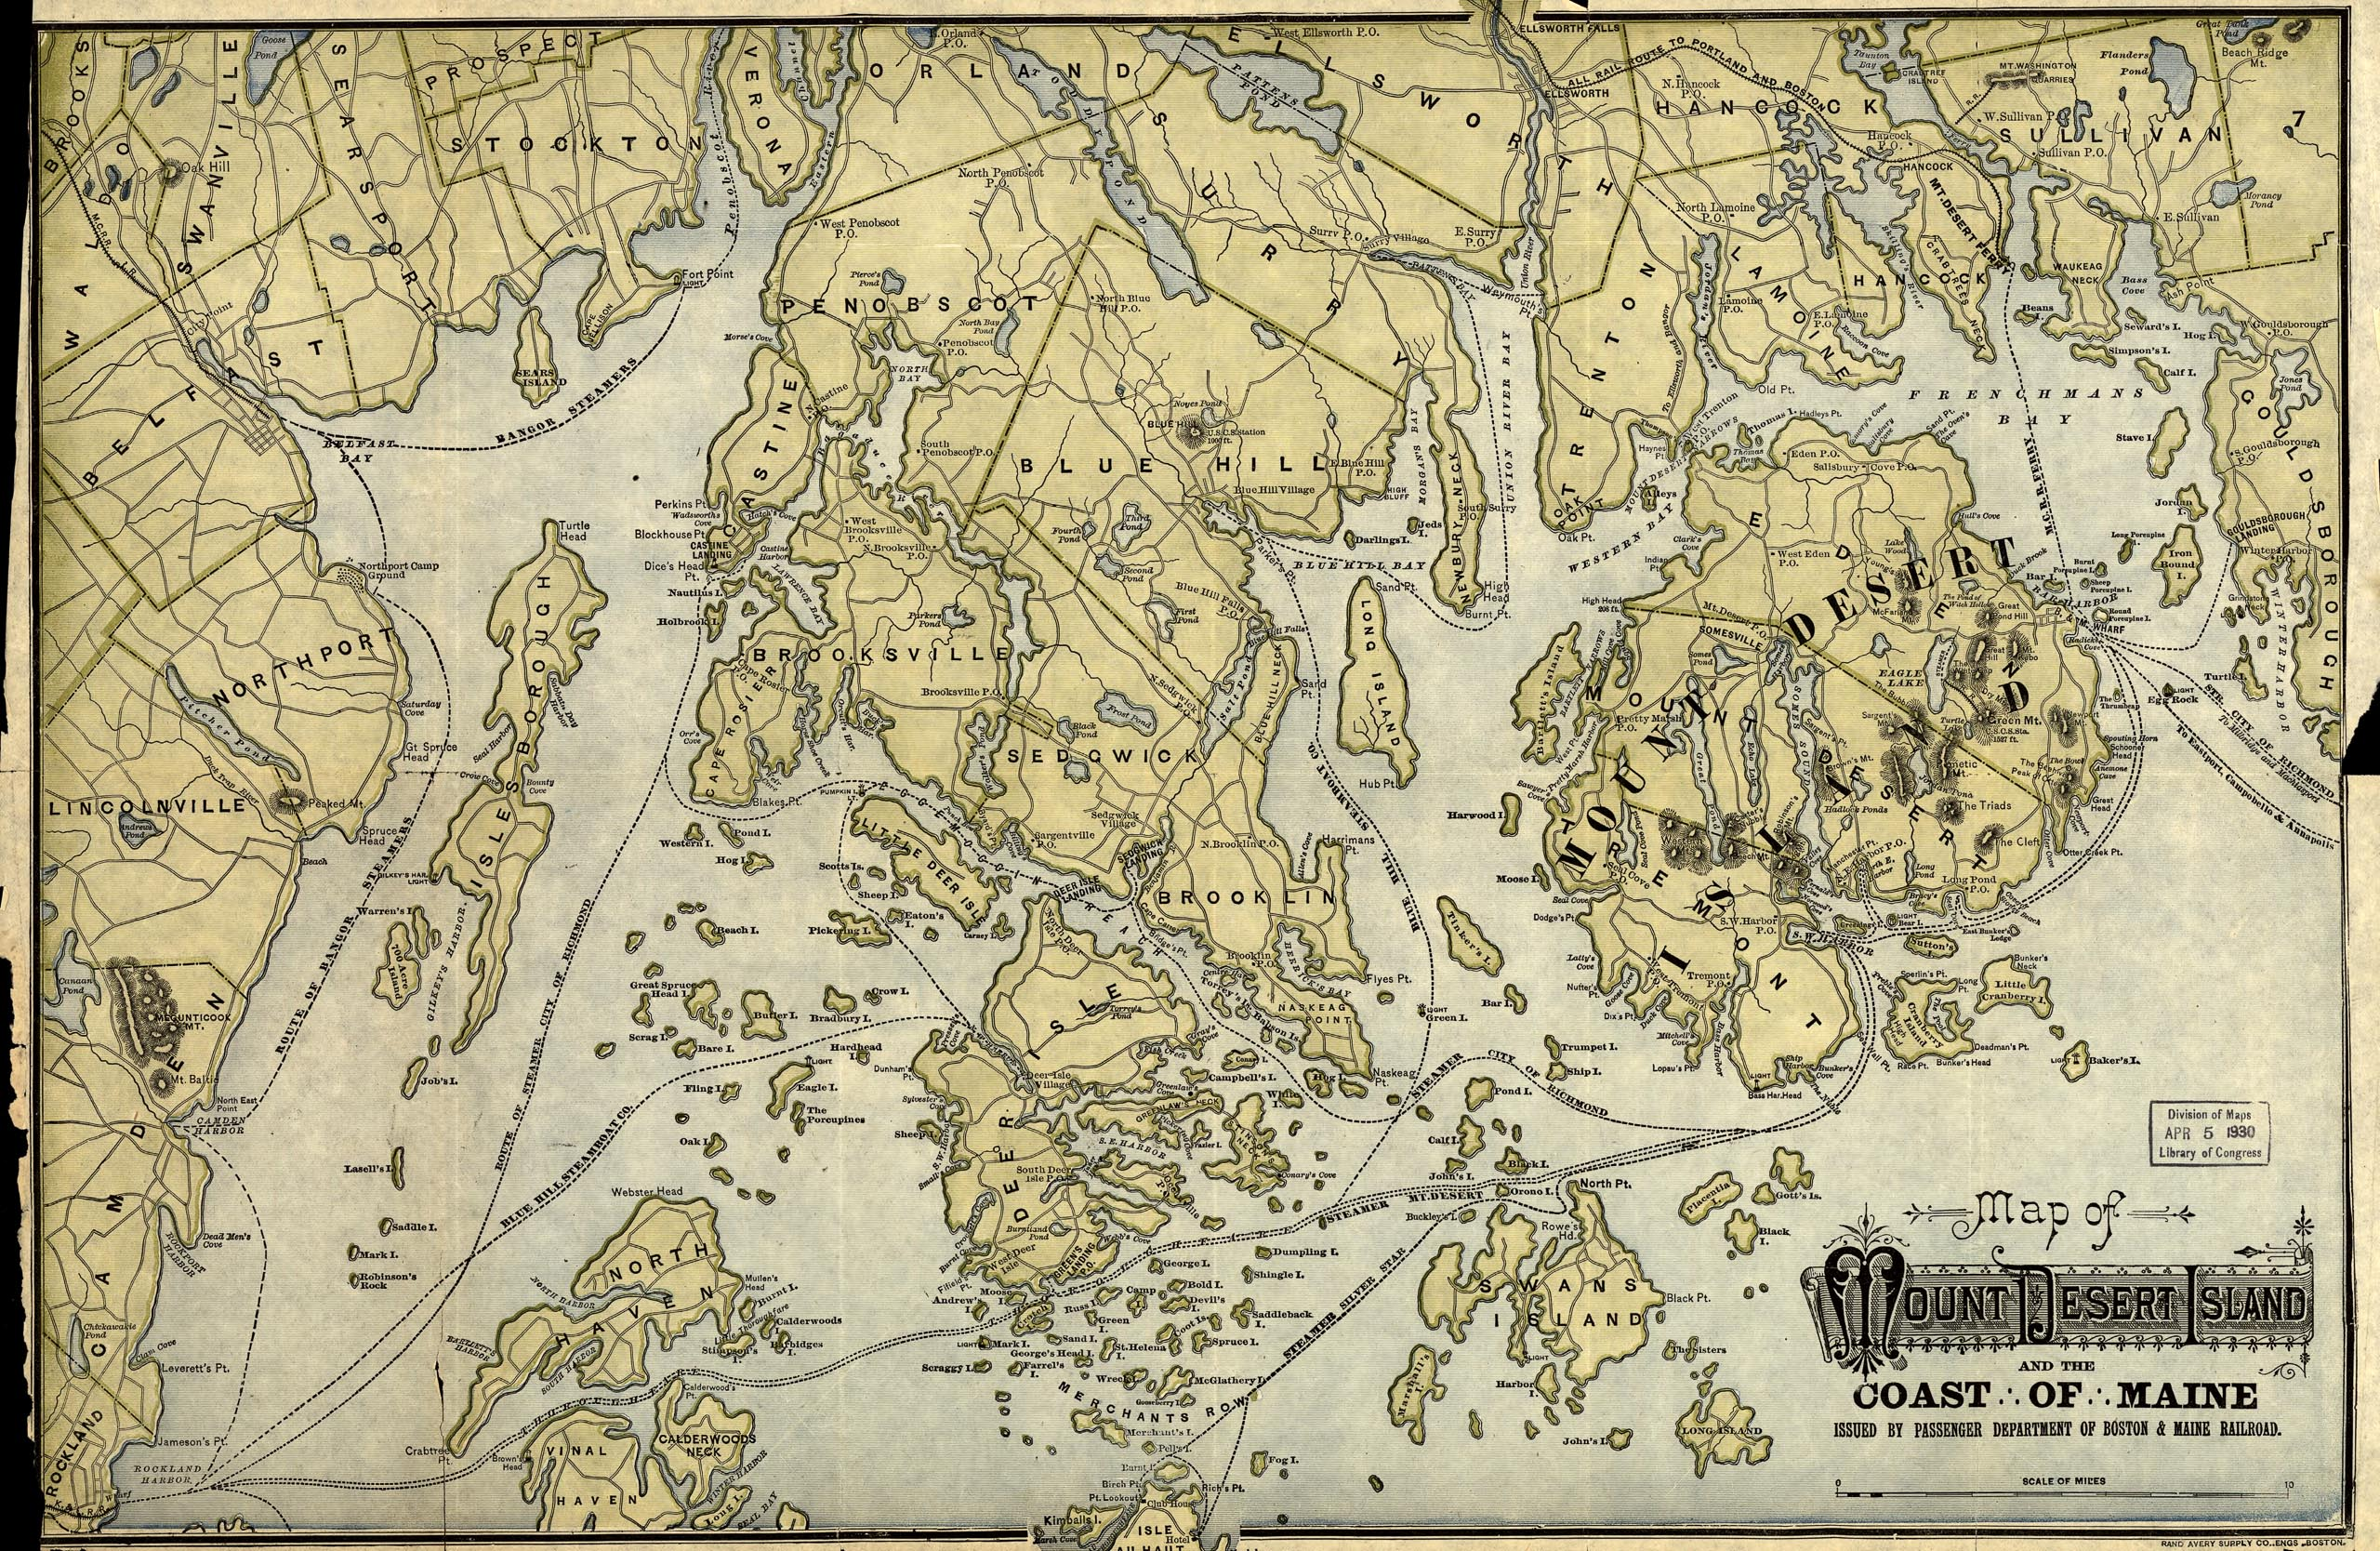 1887 Map of Mount Desert Island and the Coast of Maine, Boston and Maine RR